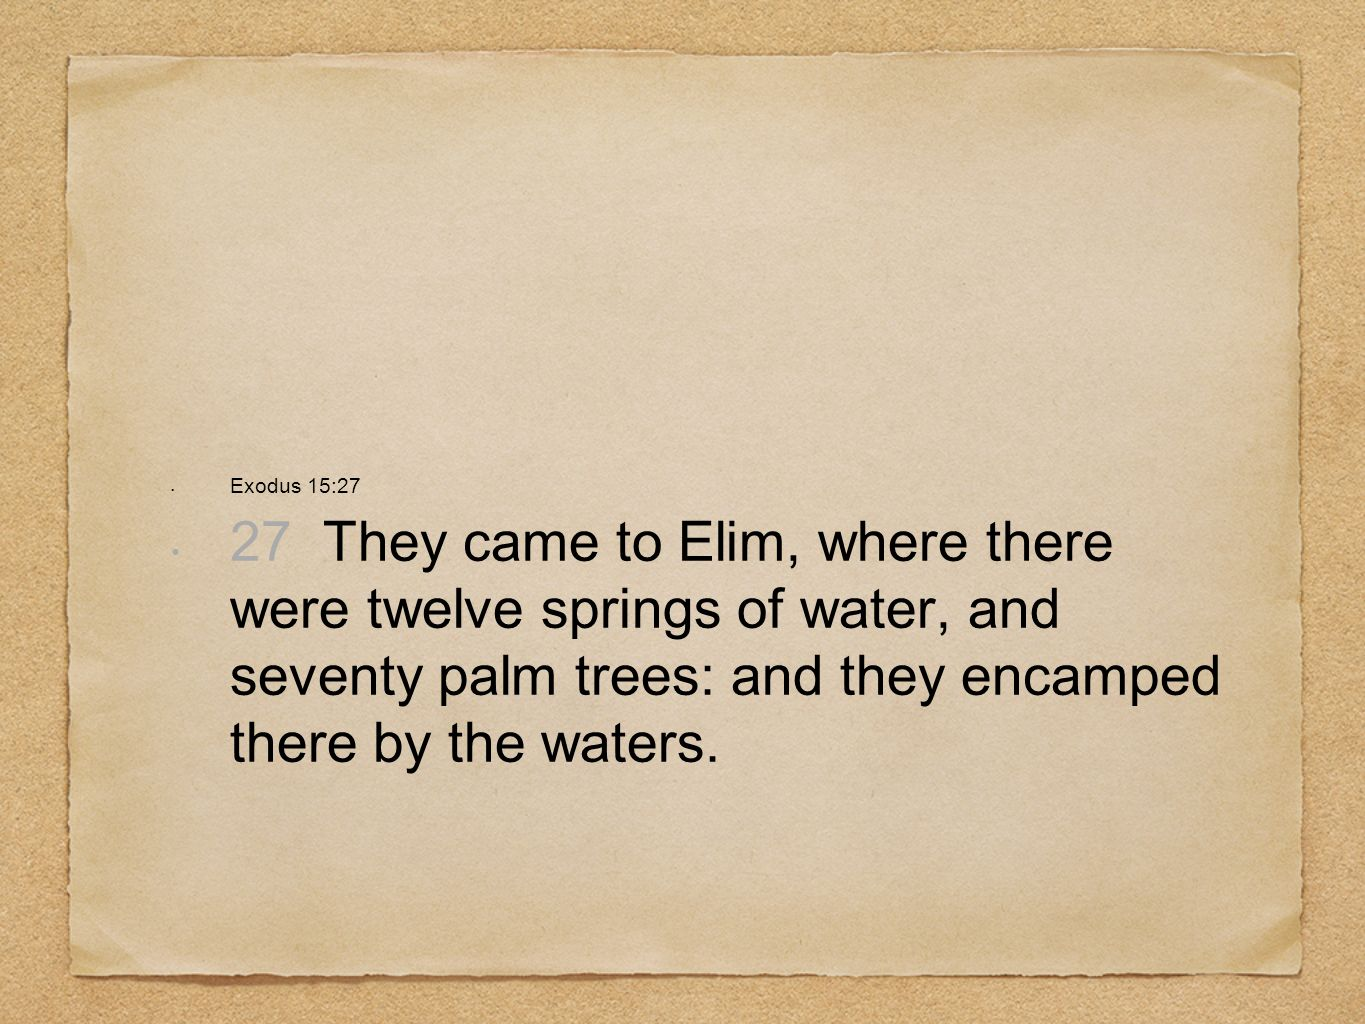 Exodus 15:27 27 They came to Elim, where there were twelve springs of water, and seventy palm trees: and they encamped there by the waters.